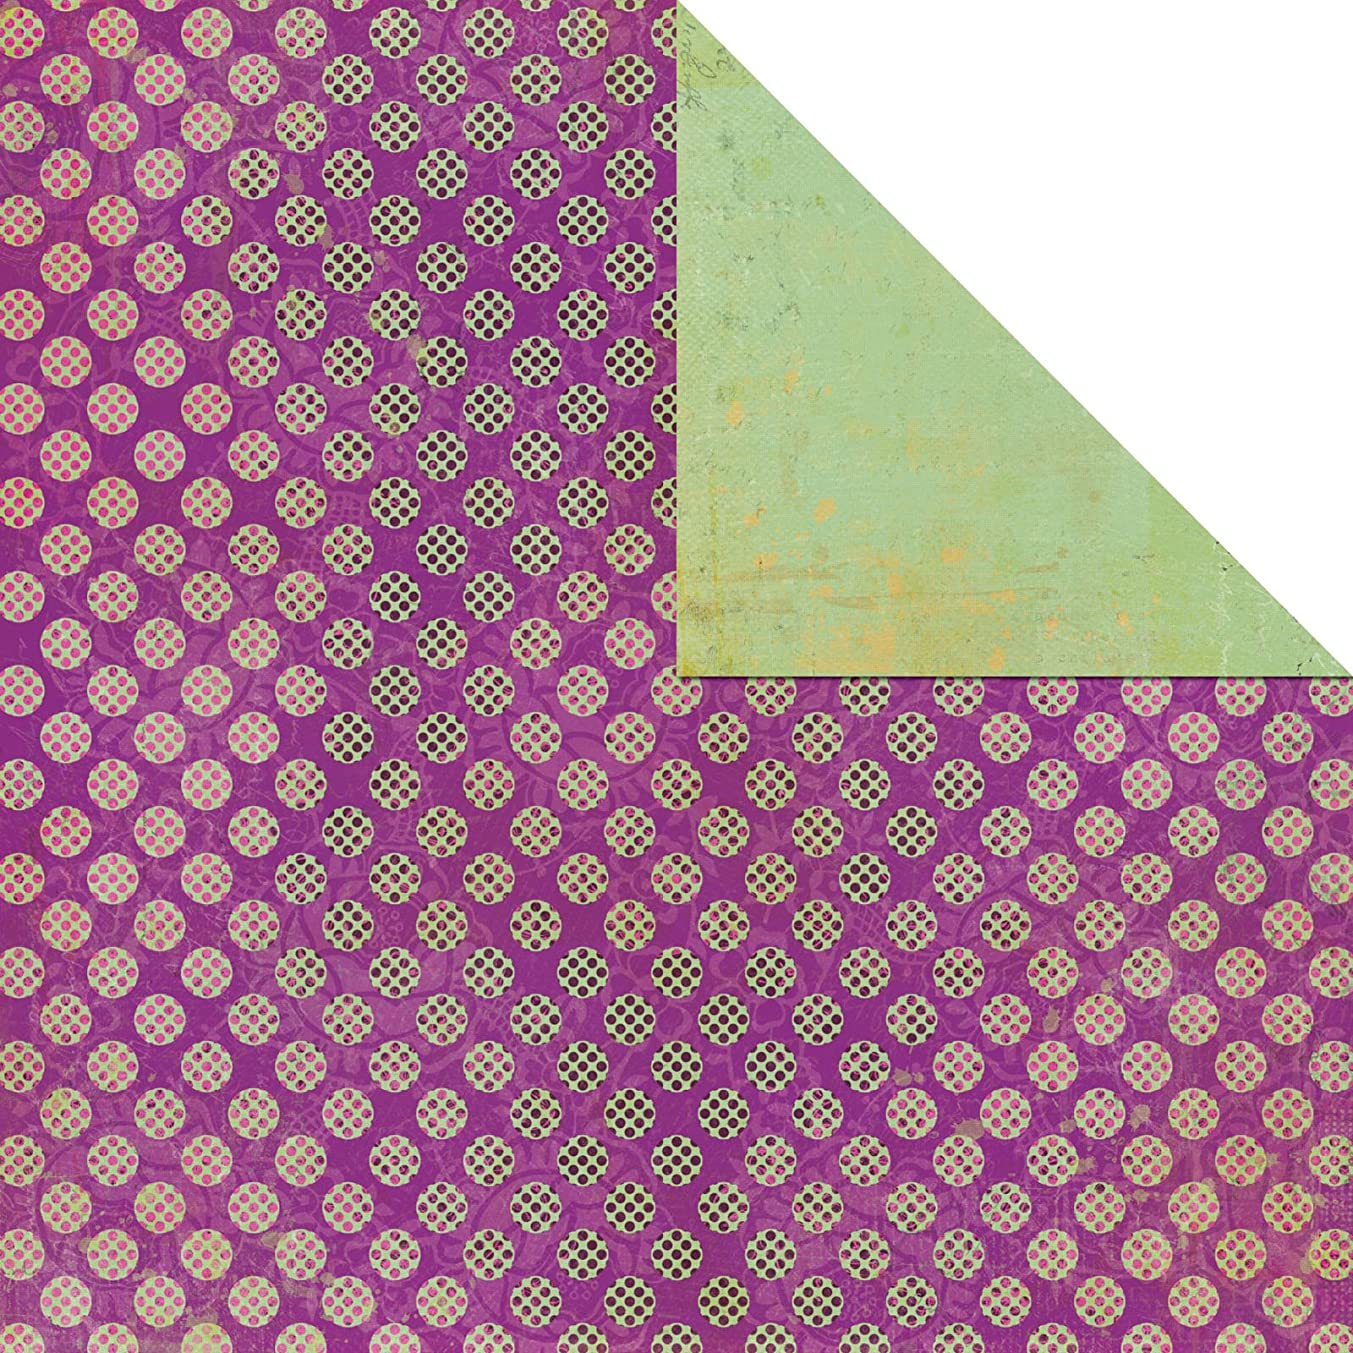 Prima 910013 12 by 12-Inch Life In Colors Double Sided Cardstock Paper, Pink Dots, 25-Pack